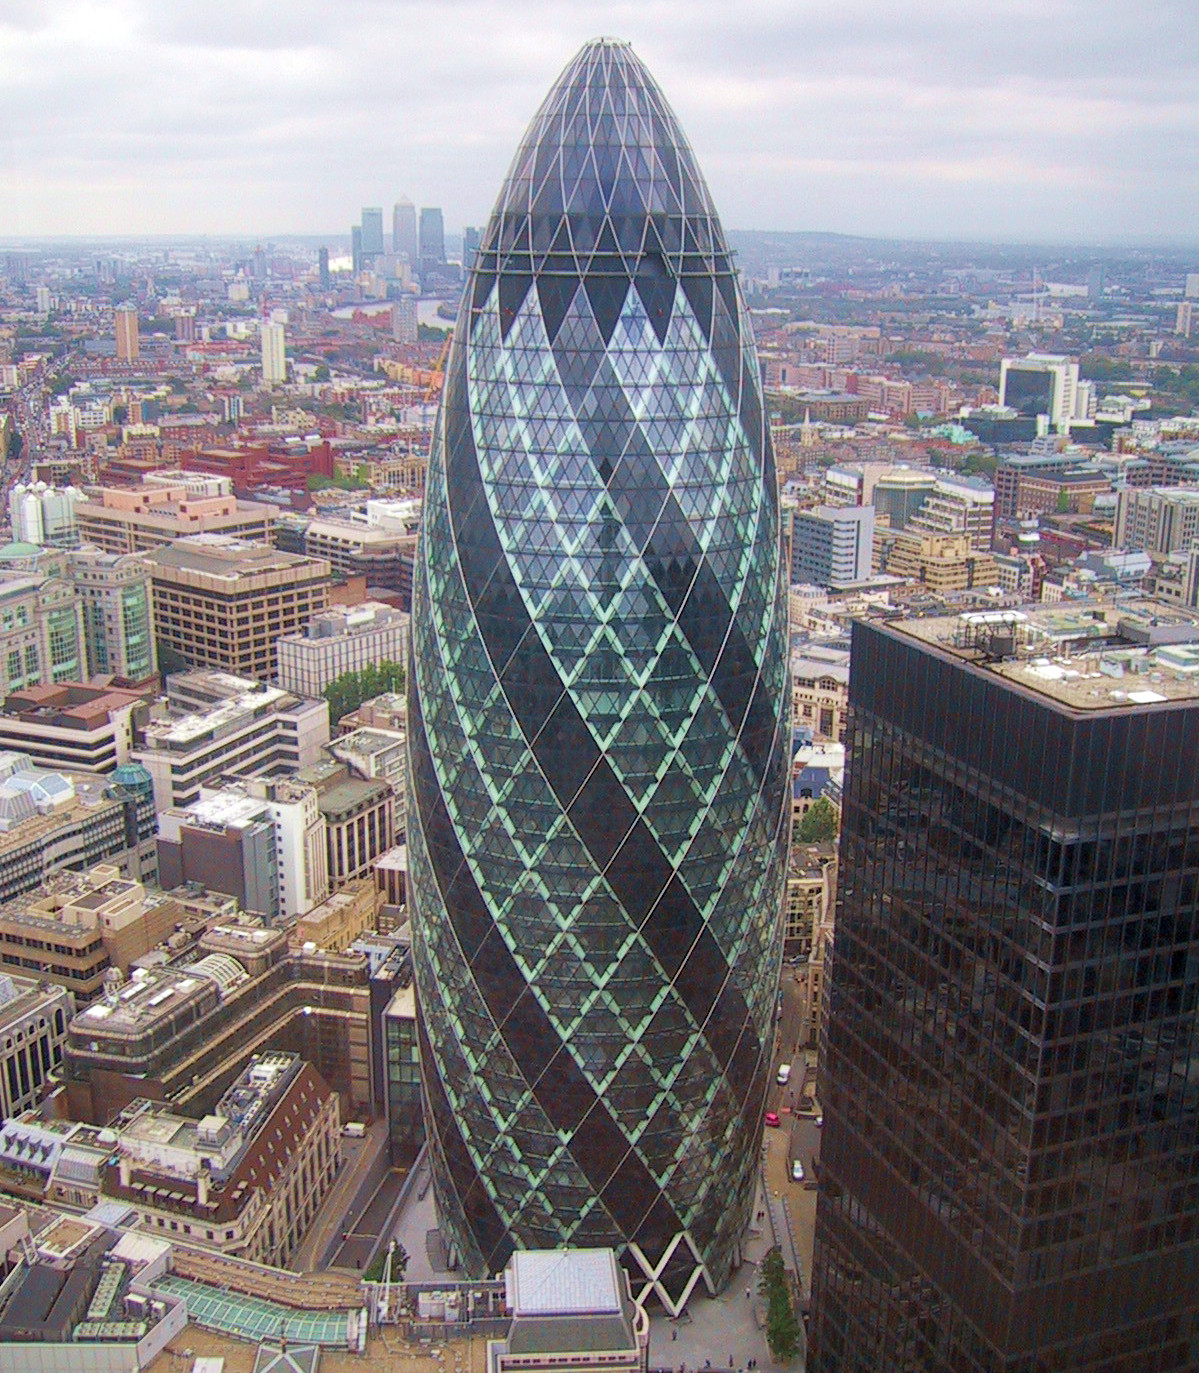 http://cudaswiata.files.wordpress.com/2009/03/30_st_mary_axe_gherkin1.jpg